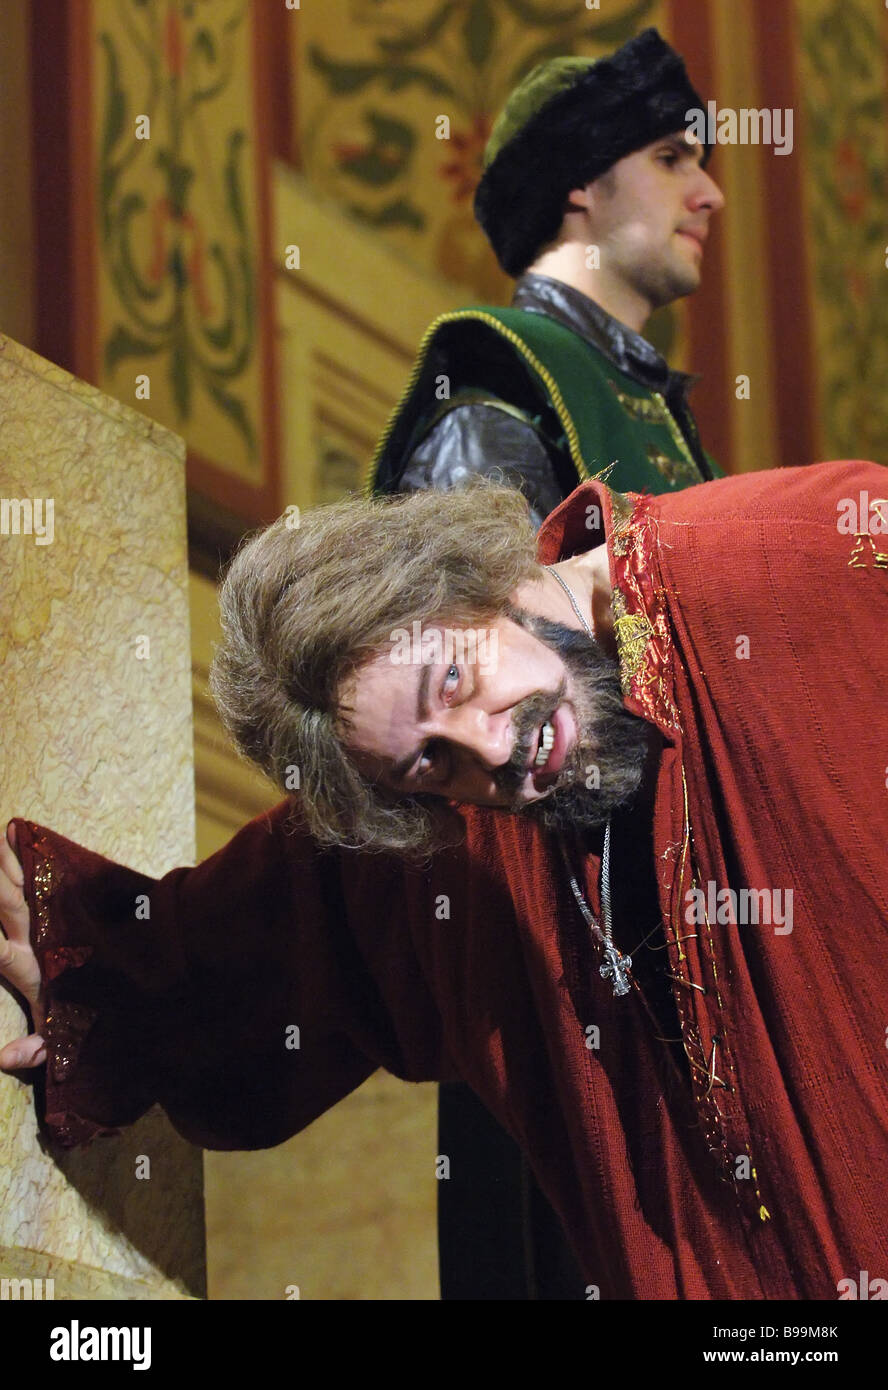 Two act historical drama Boris Godunov presented at the State History Museum Vladimir Kudashev stars as Boris Godunov - Stock Image